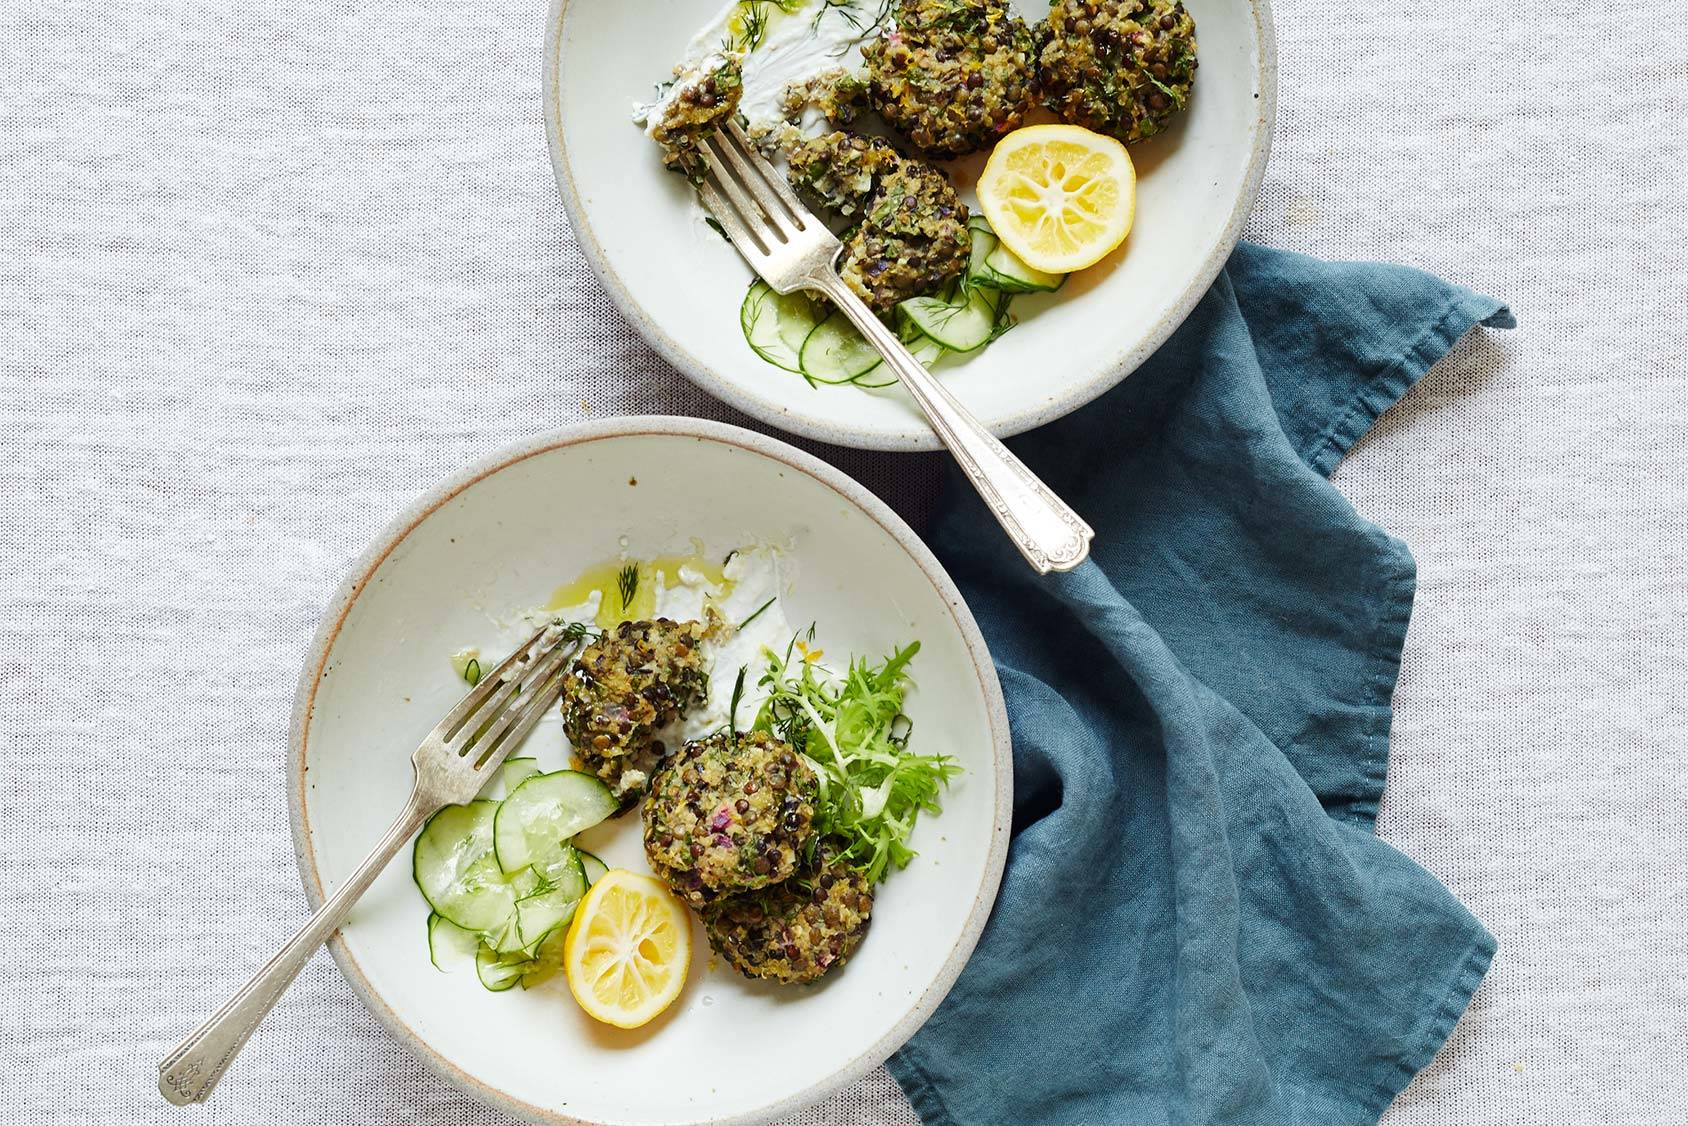 Lentil cakes served with lemon, cucumber and Greek yoghurt.